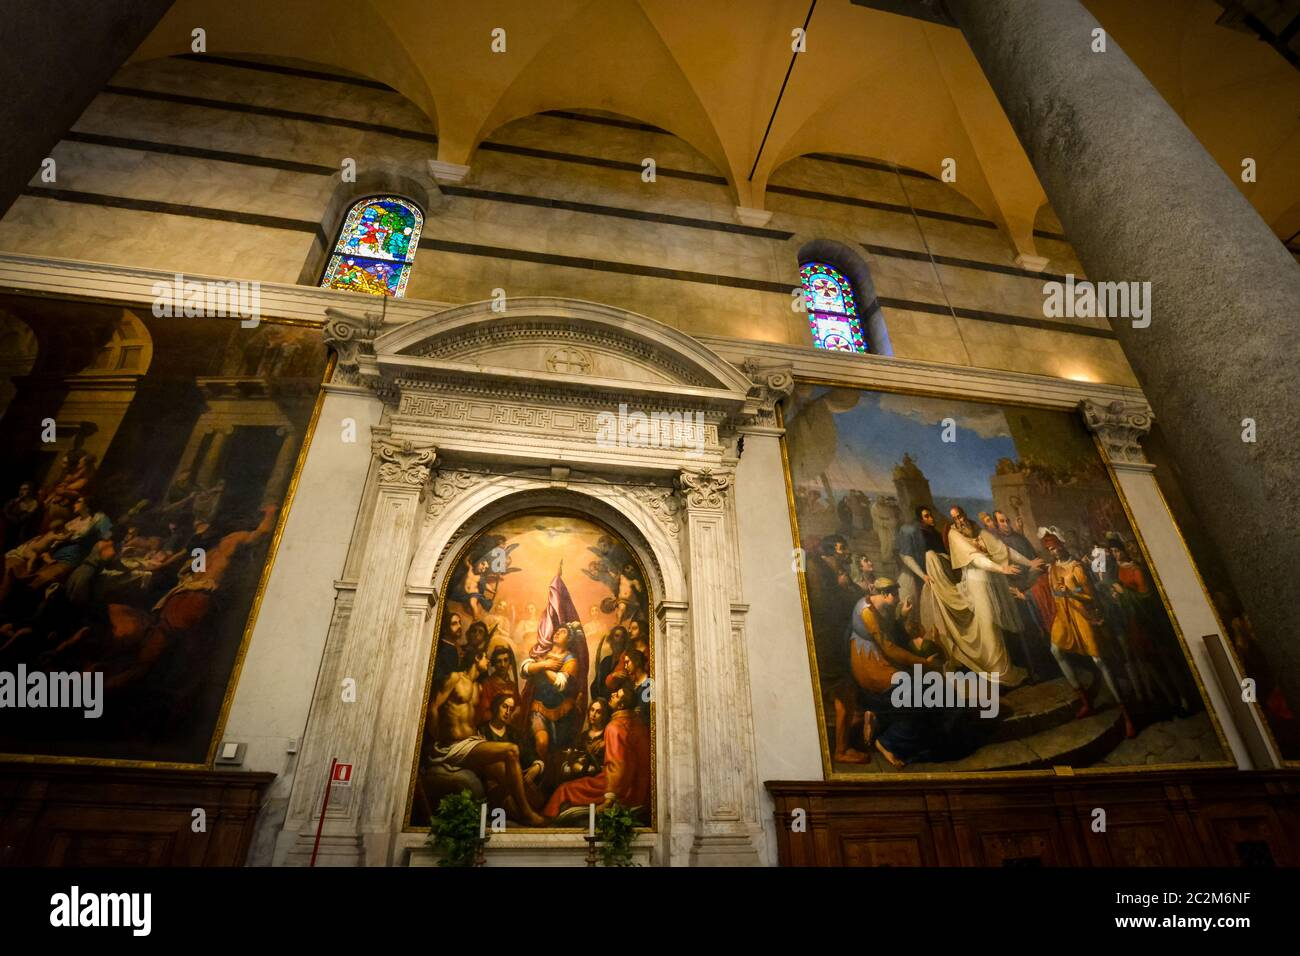 Renaissance religious paintings at the side altar of the Pisa Cathedral in Pisa Italy showing the gothic interior and stained glass windows Stock Photo